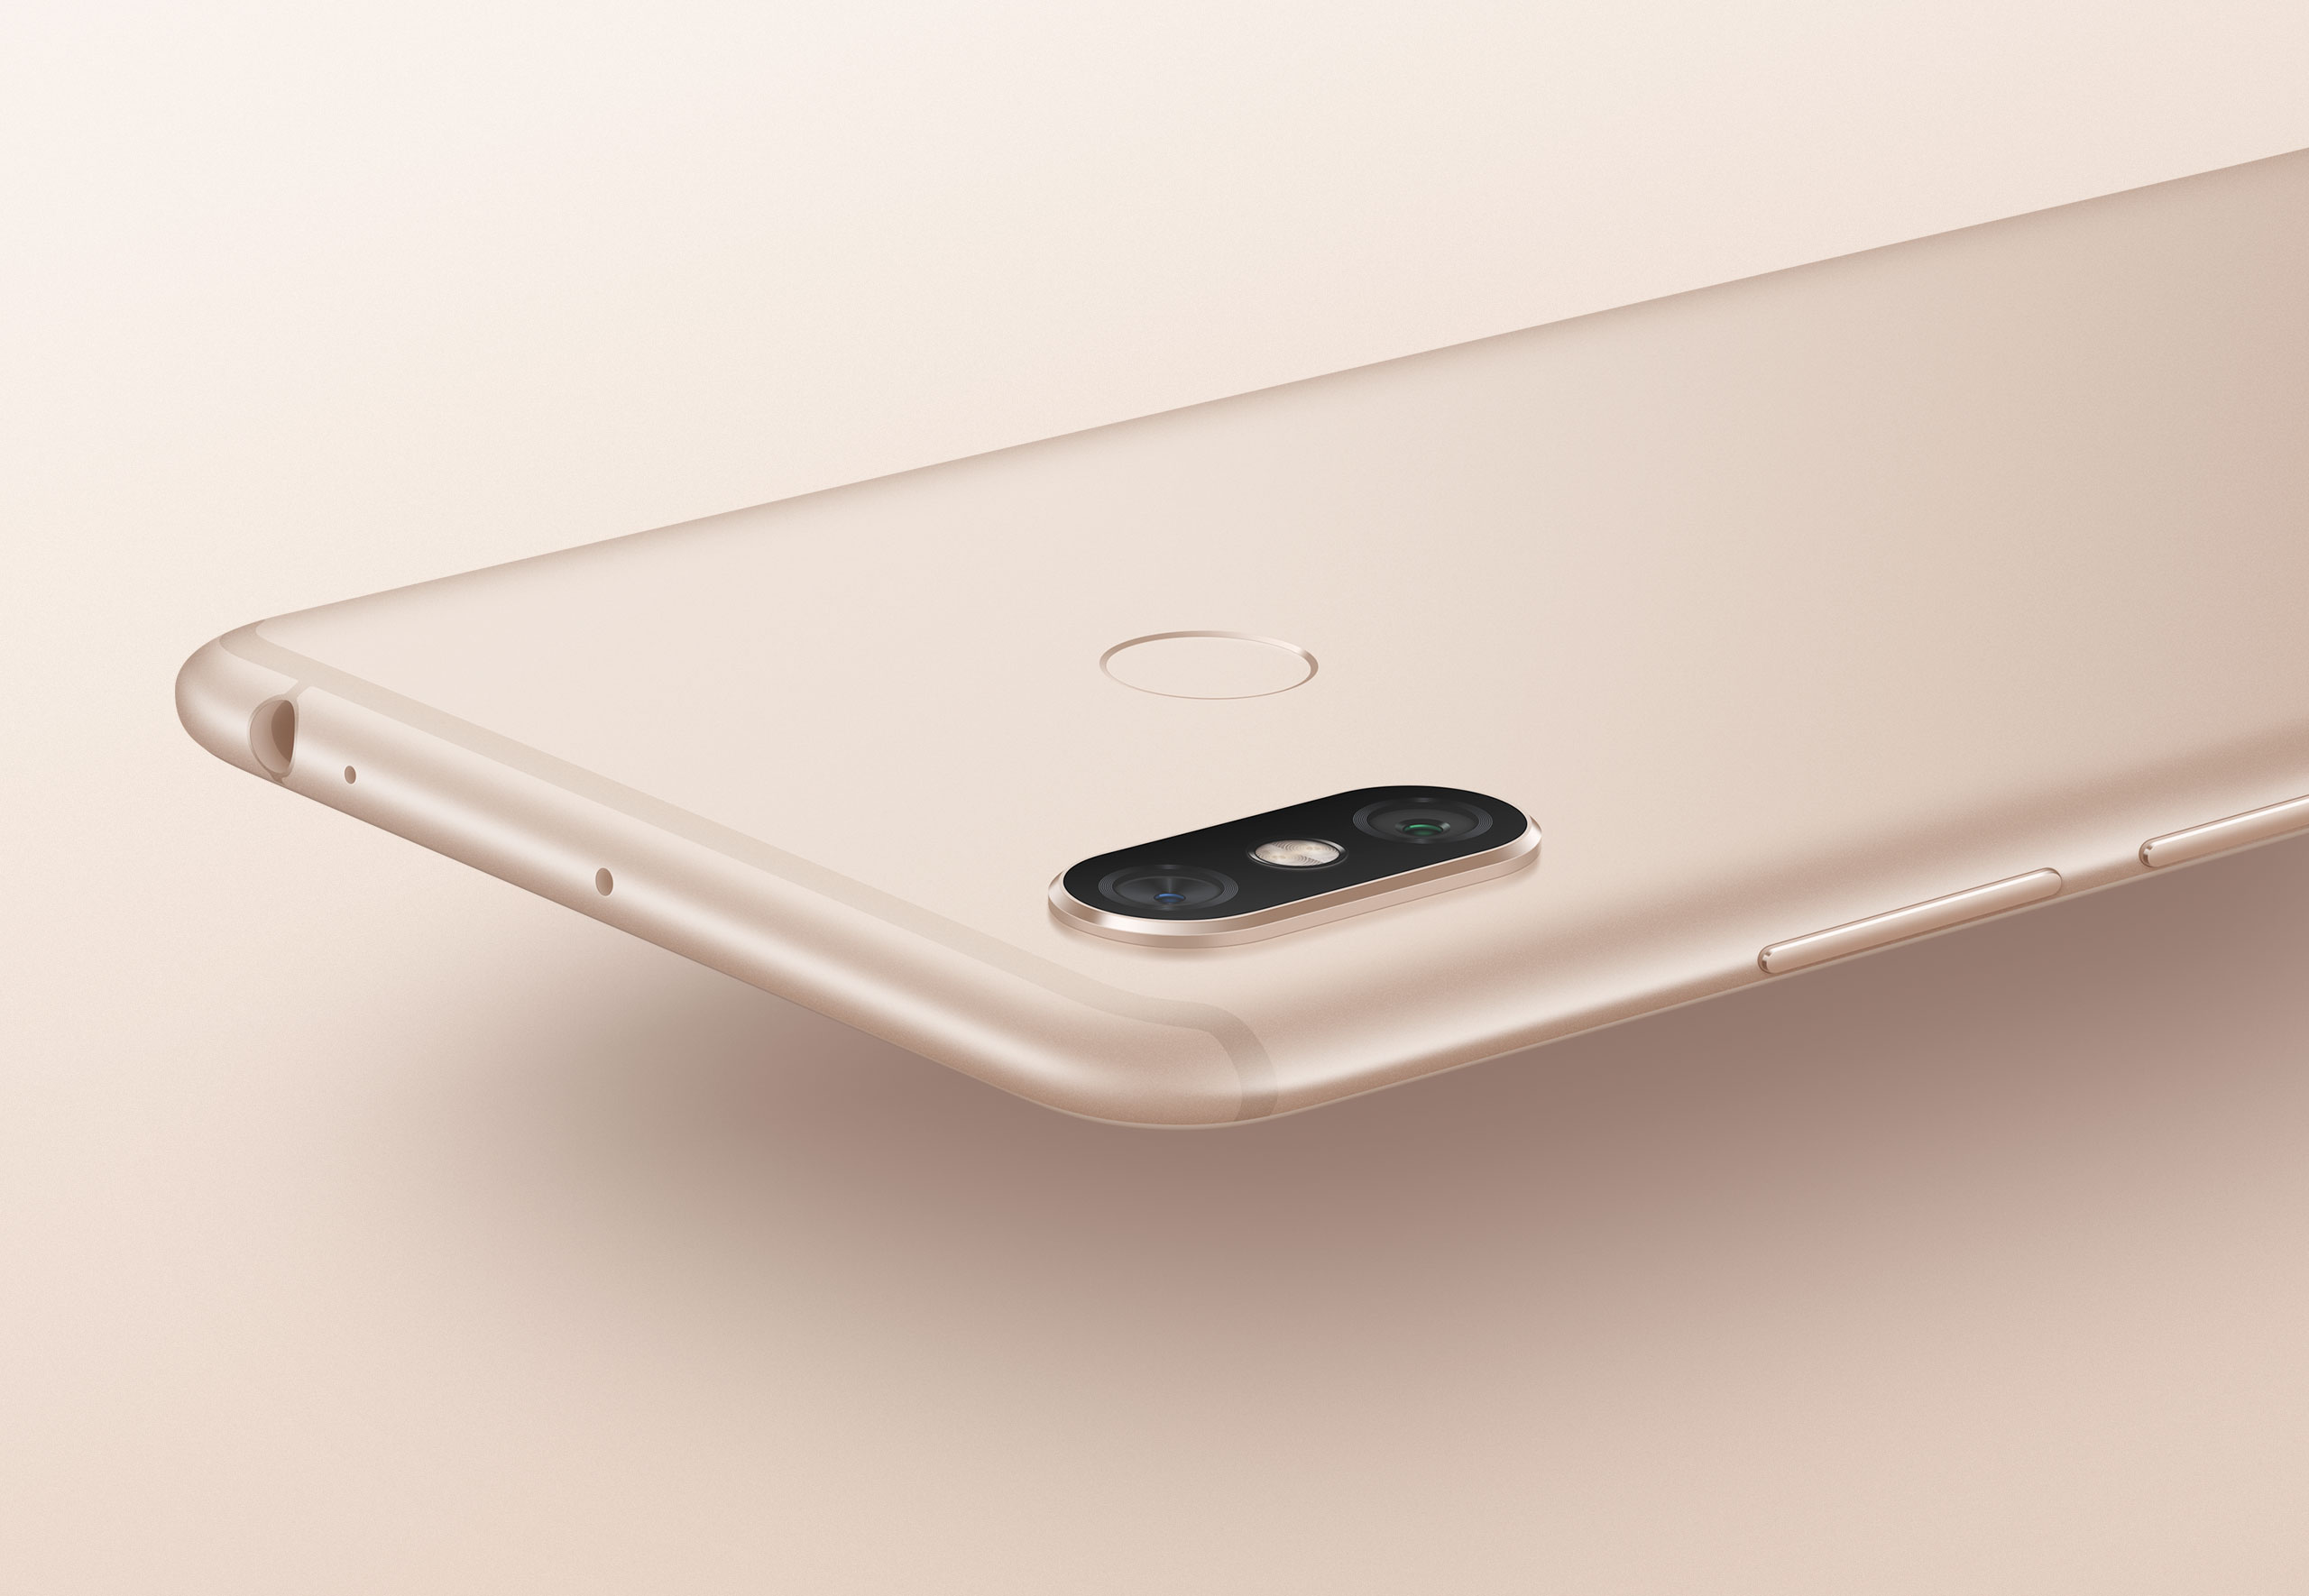 Xiaomi Mi Max 3 update: MIUI 10 stable available globally as